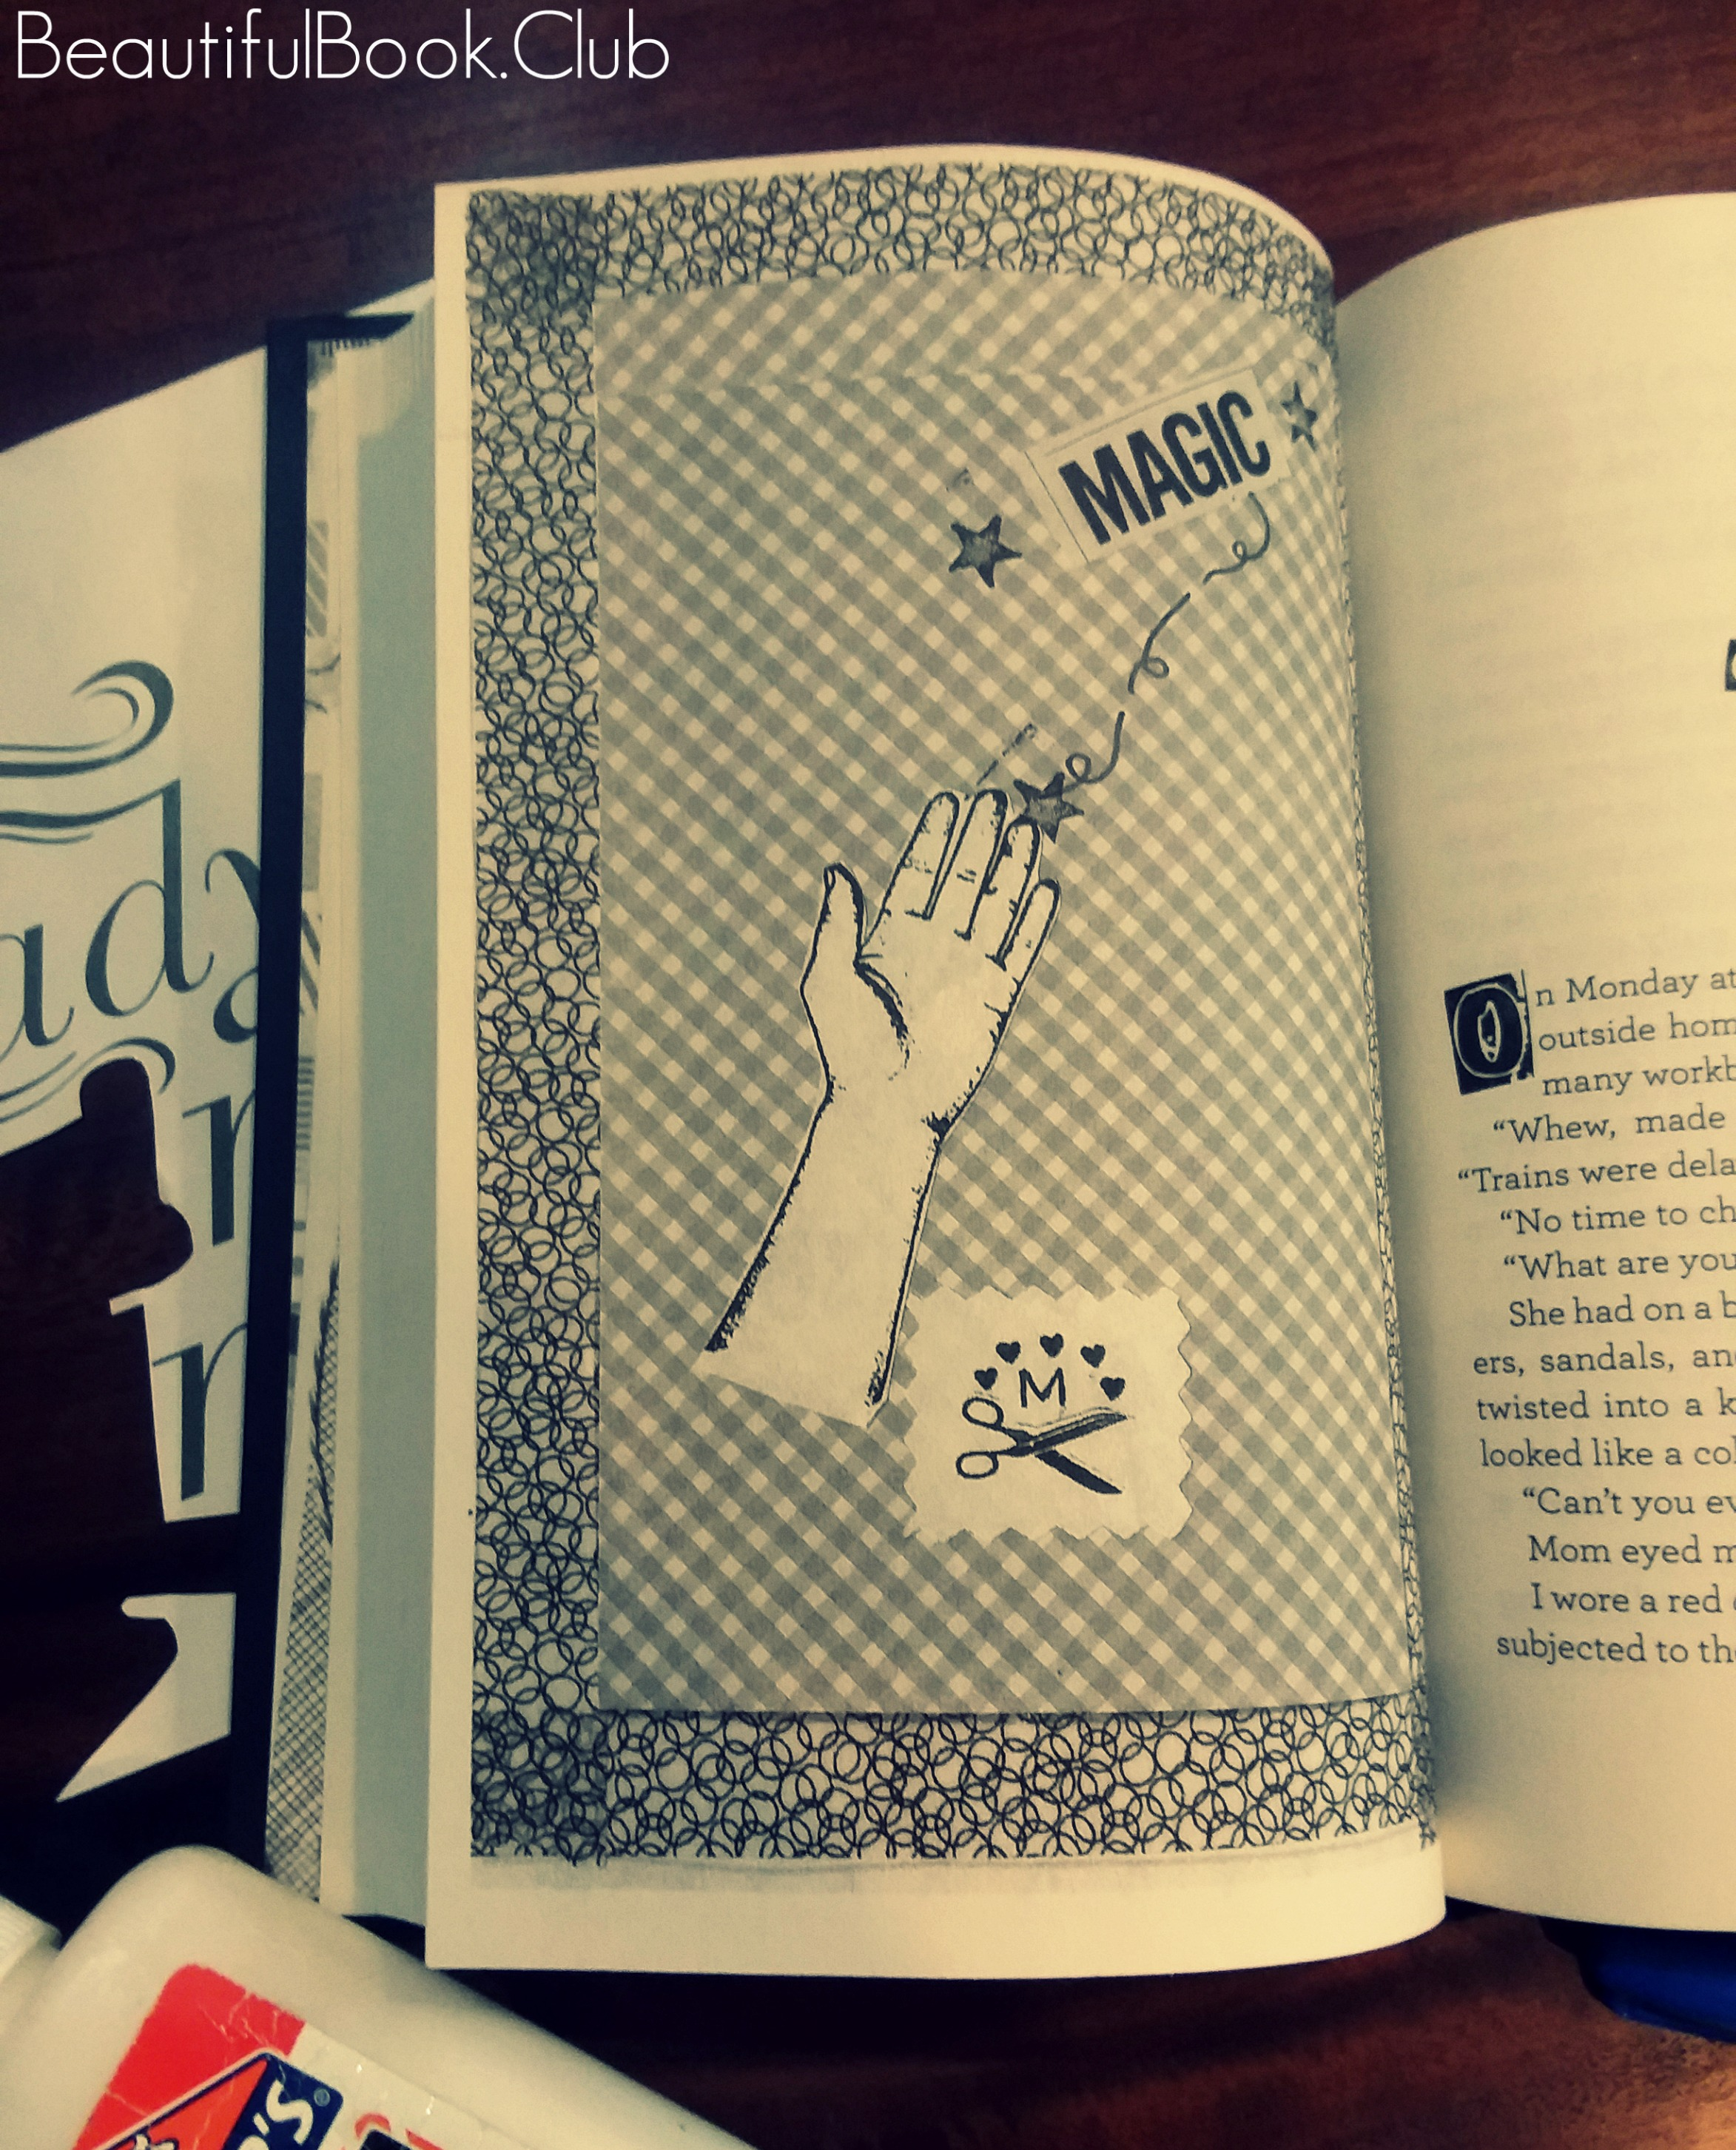 Magic page in The First Rule of Punk by Celia C. Perez